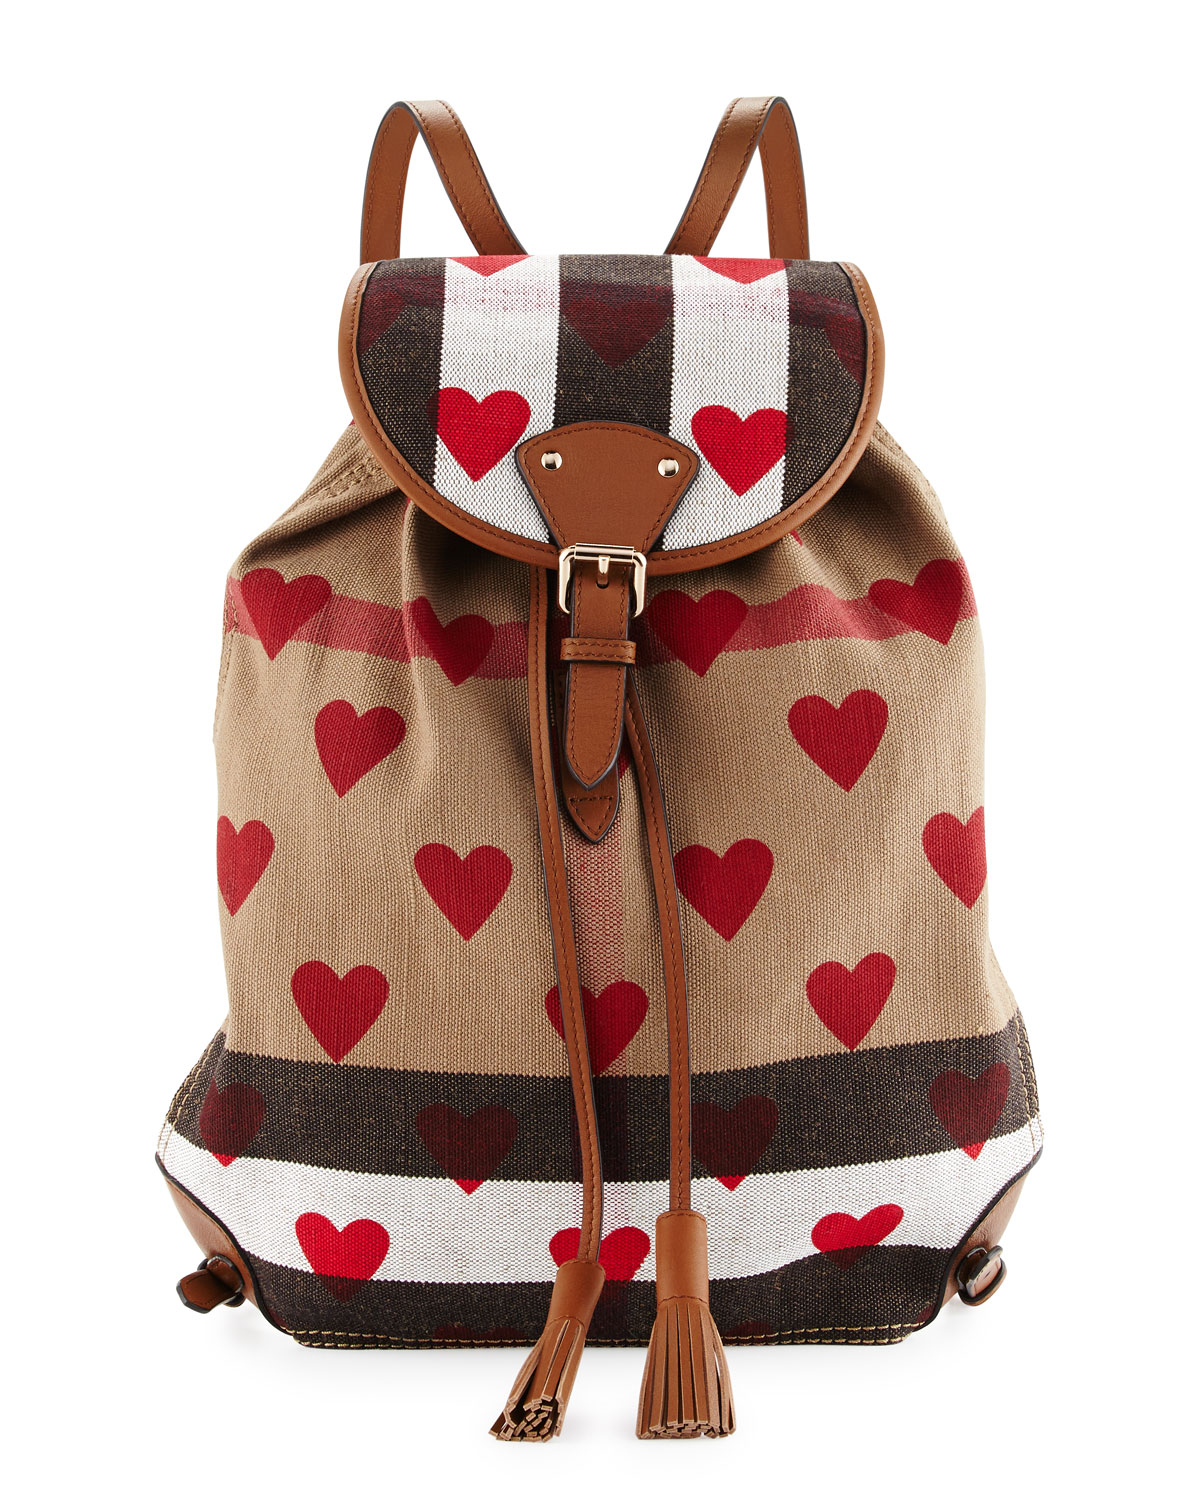 6c8d5eebdb Burberry Chiltern Check Hearts Medium Canvas Backpack